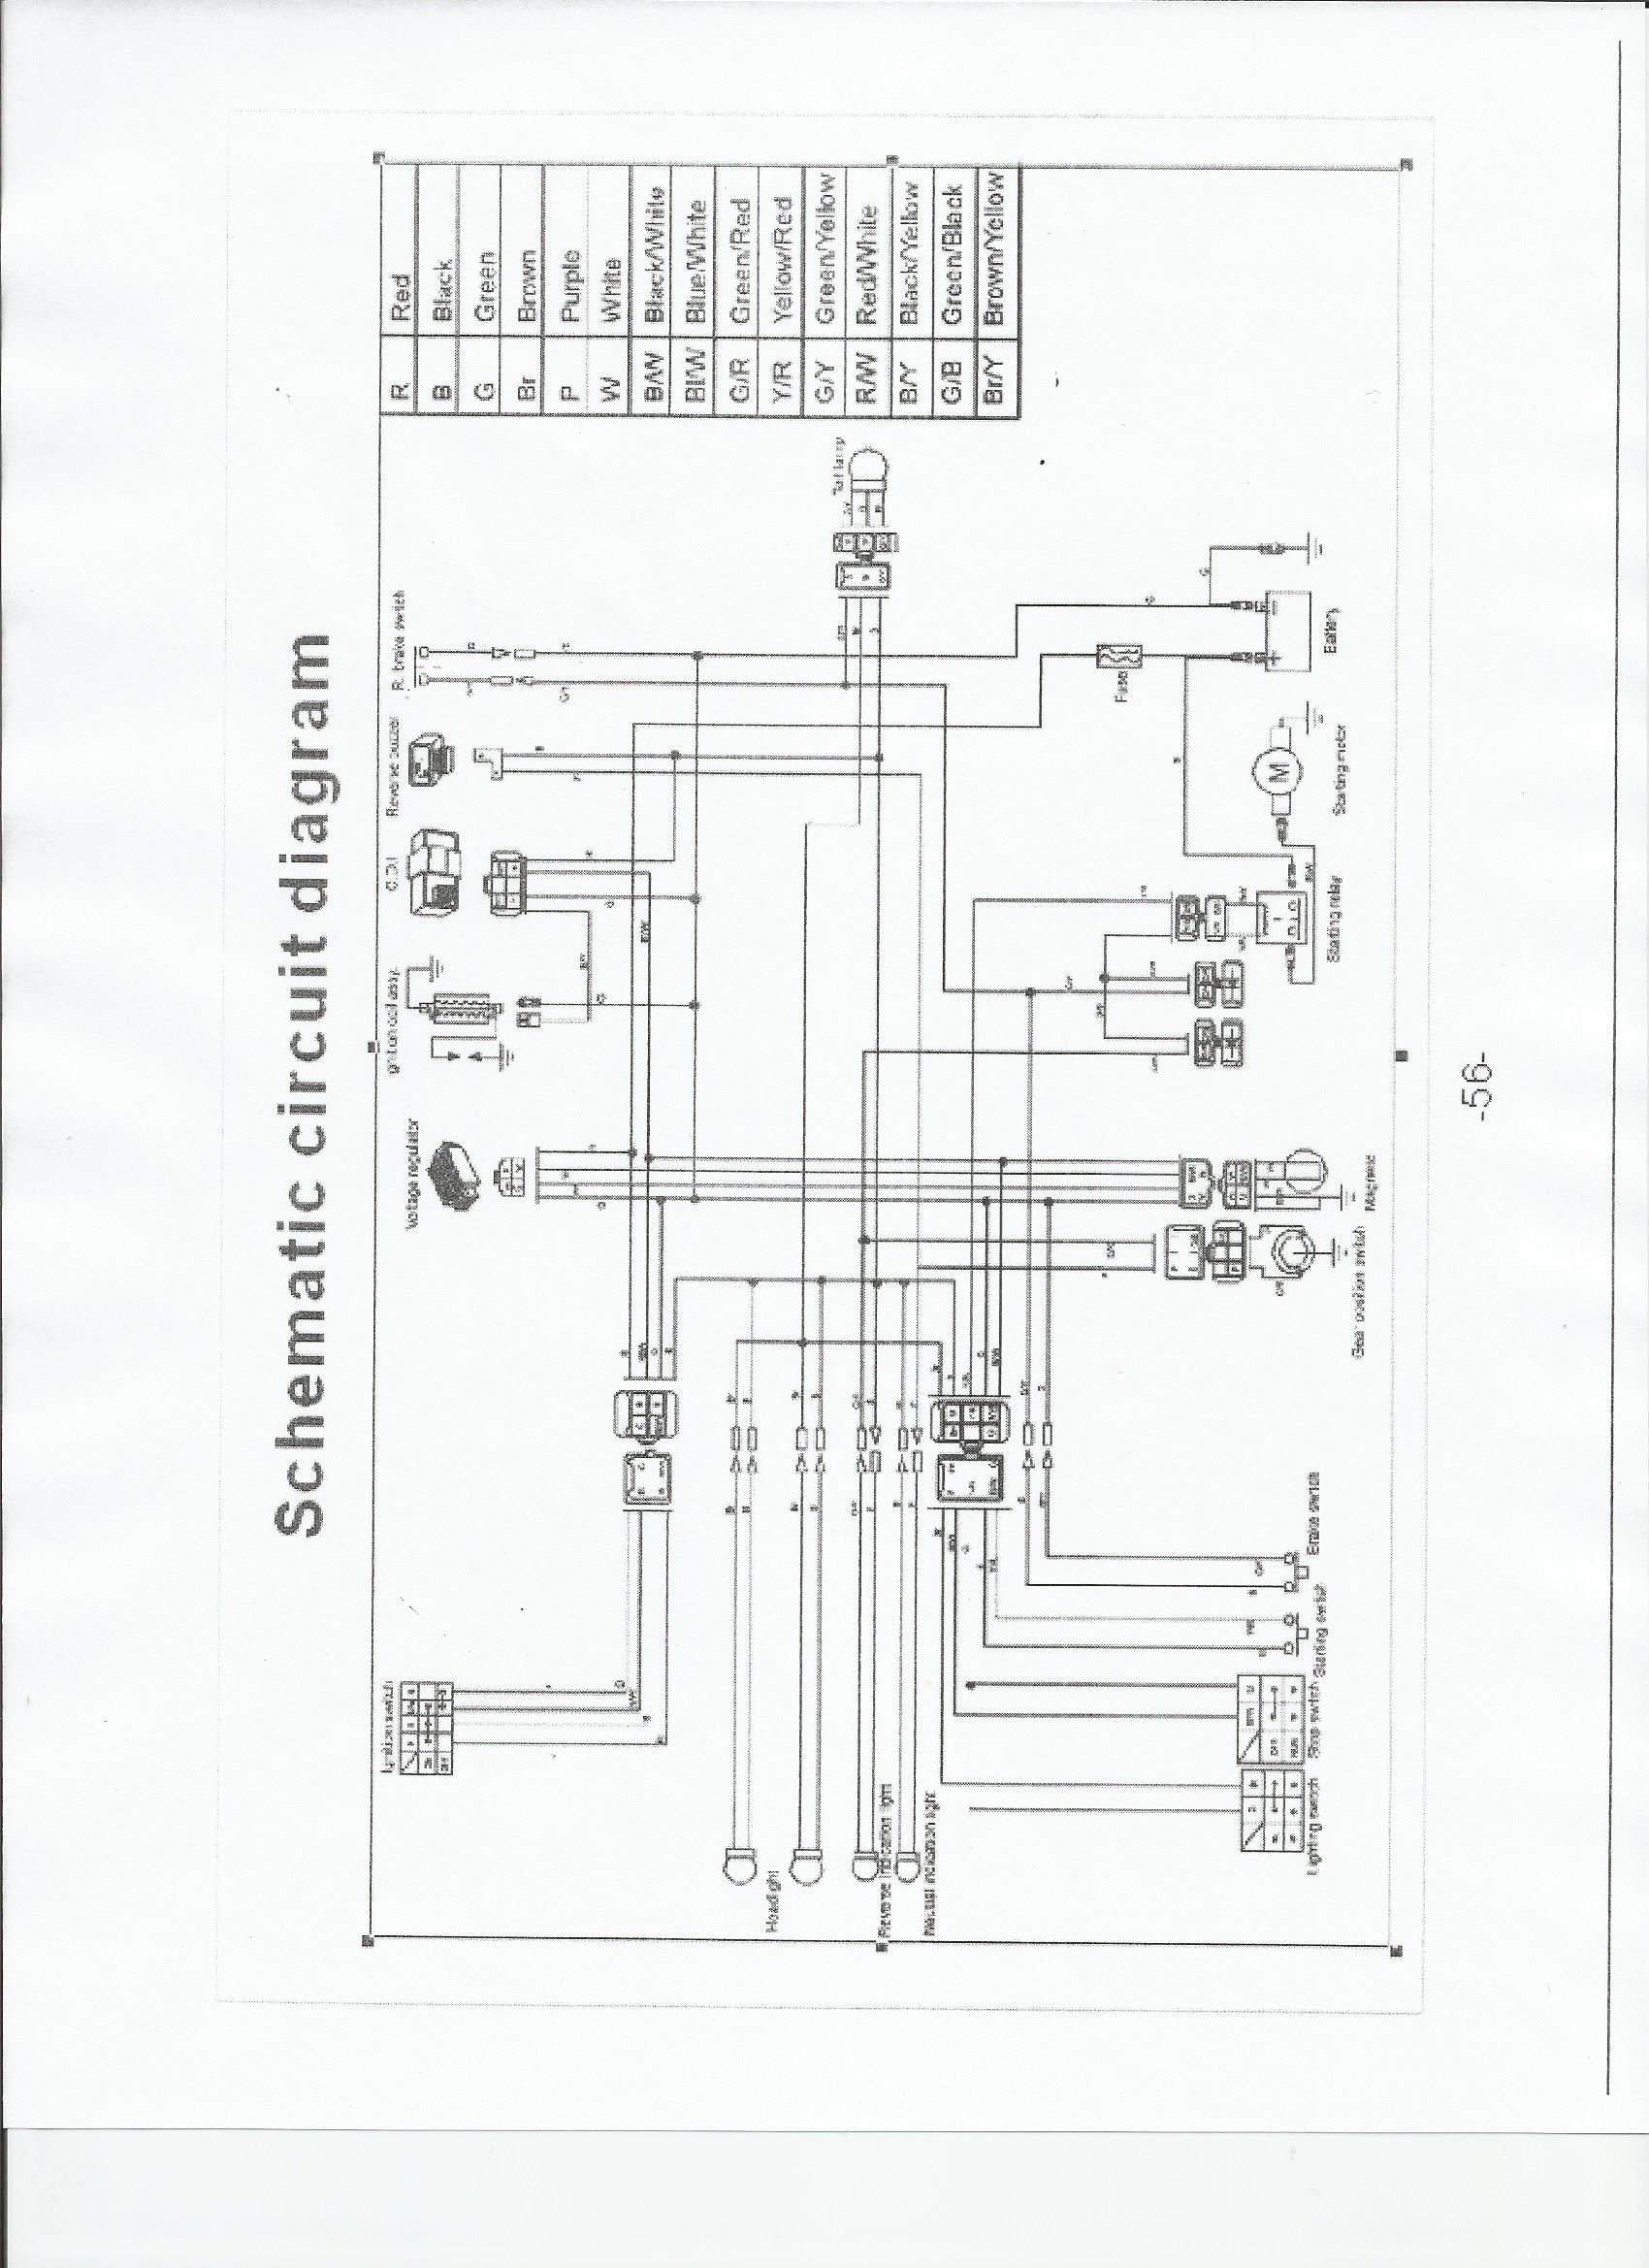 tao tao wiring schematic taotao mini and youth atv wiring schematic familygokarts support chinese atv wiring diagrams at webbmarketing.co